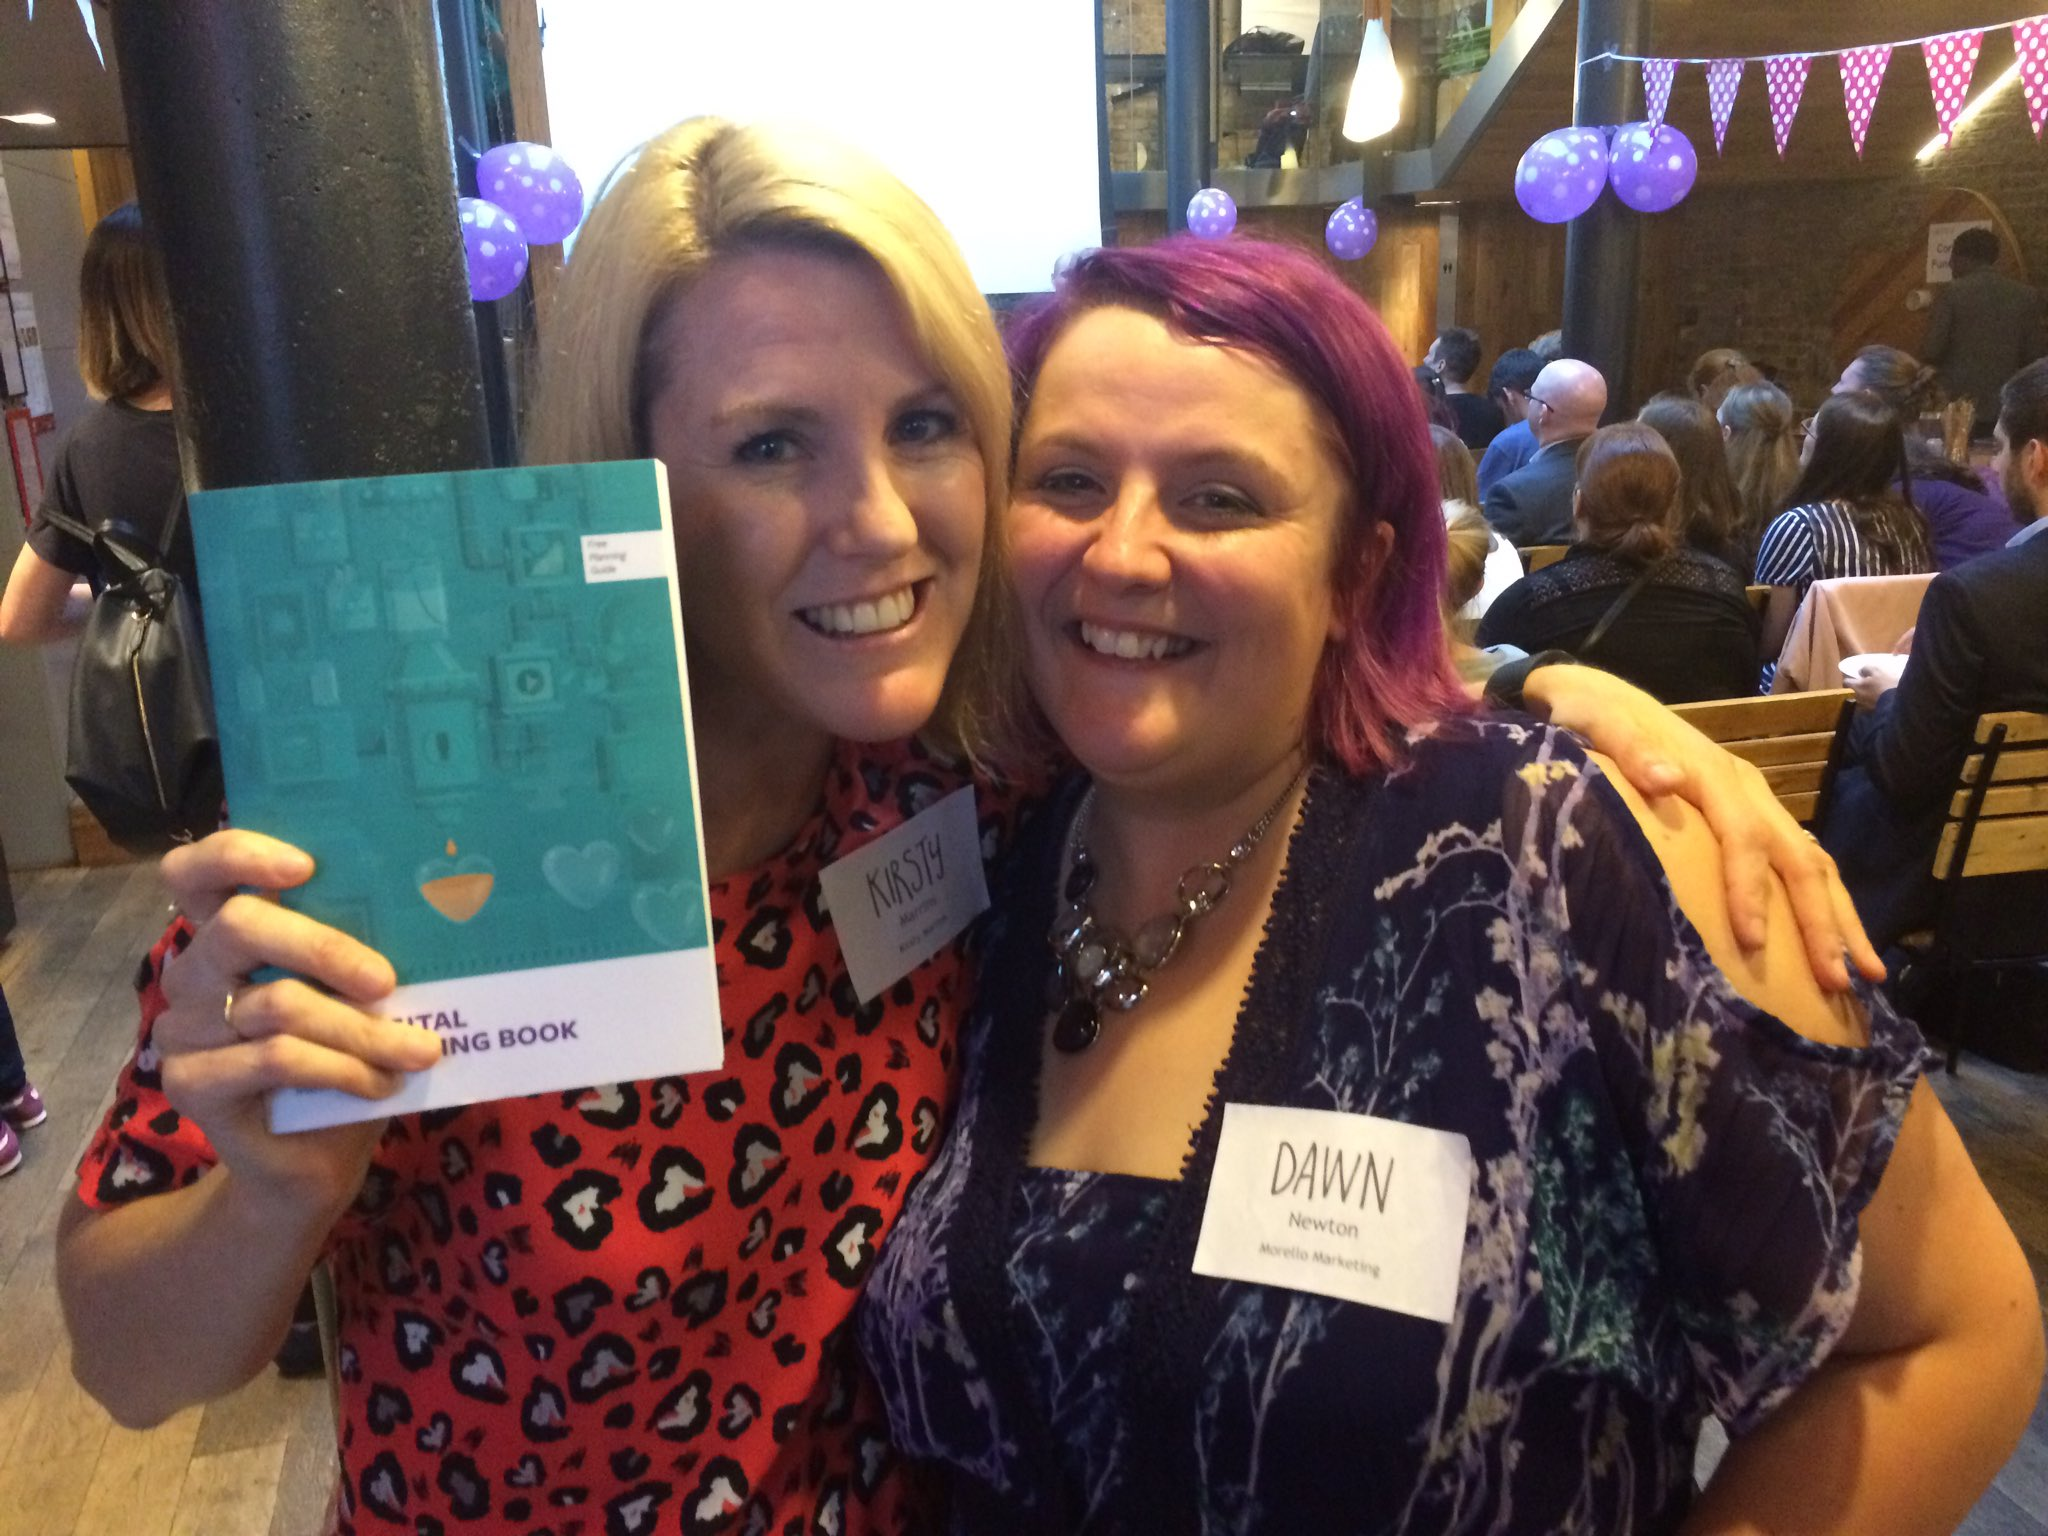 Woohoo! I just won @acrim's new book on Digital Fundraising at @goreckidawn's #charitymeetup https://t.co/5l3AskzIER